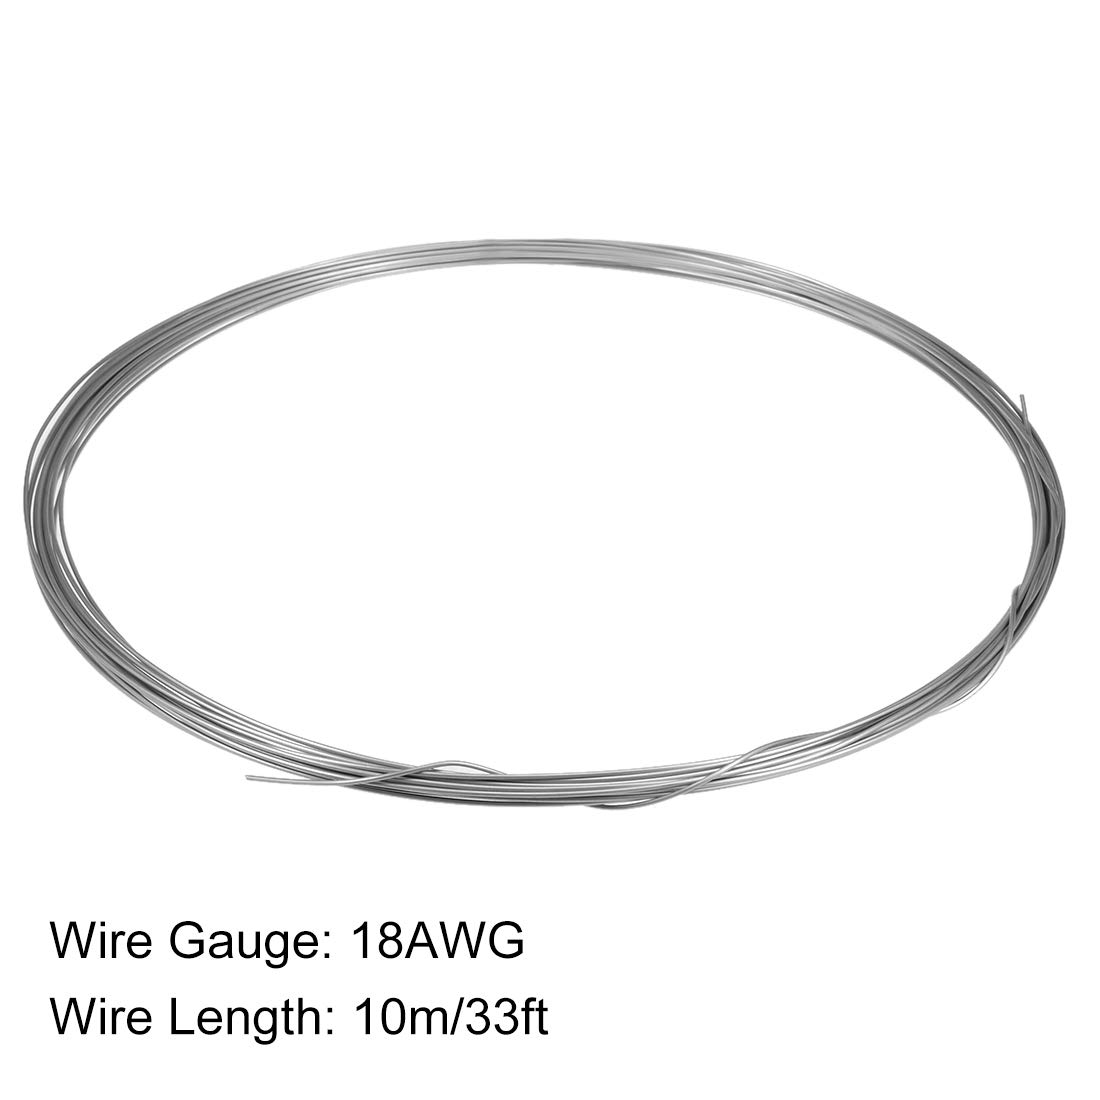 uxcell 15 Gauge Resistance Wire Wrapping 41ft Nichrome Heating Resistor Wires